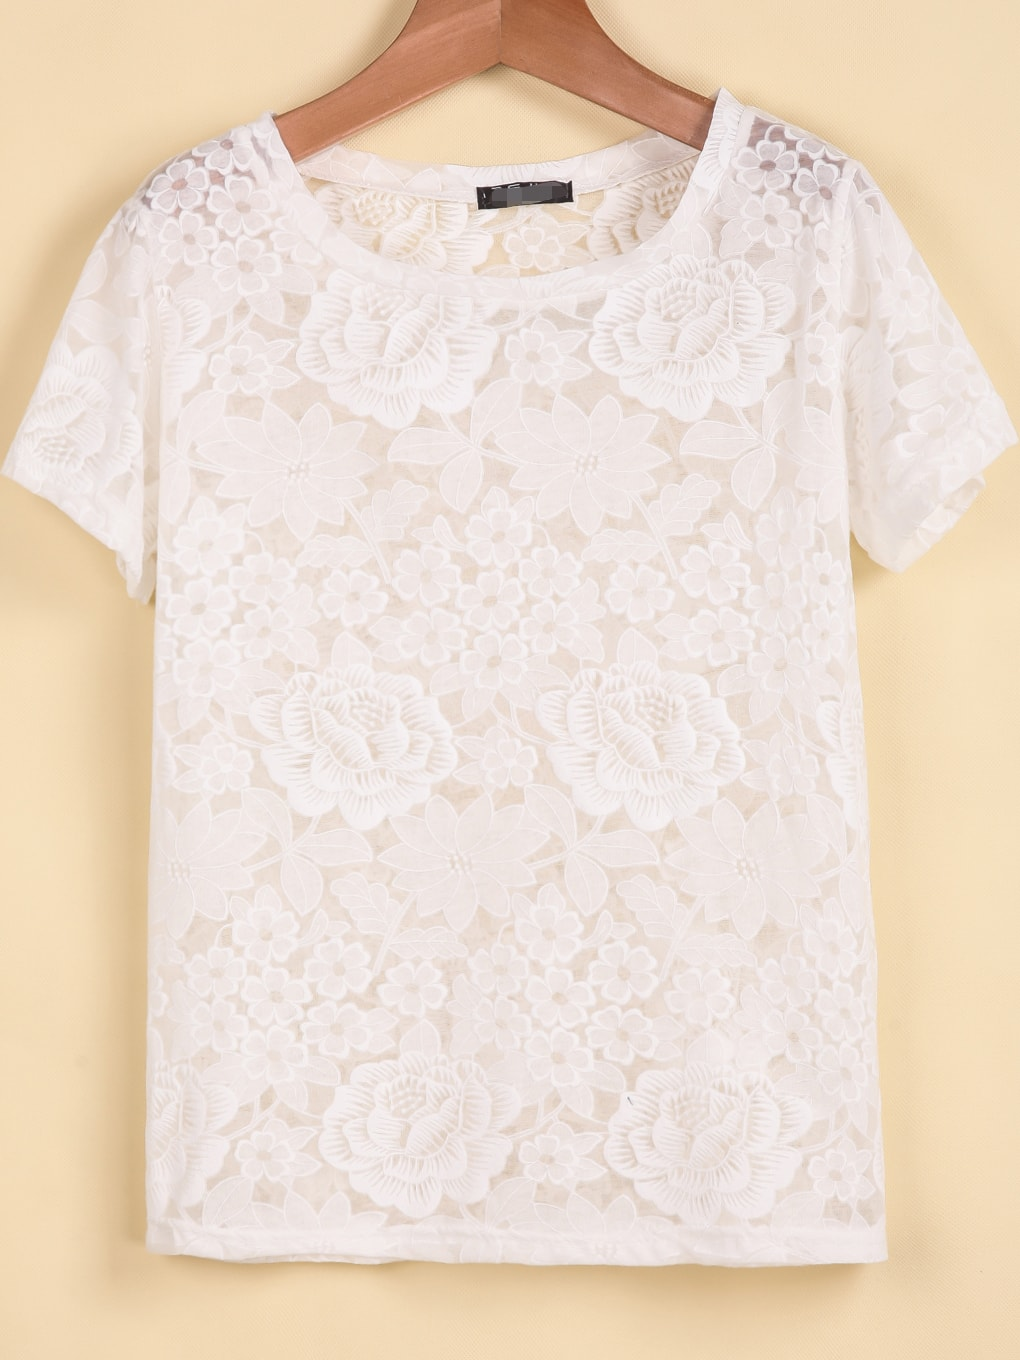 Crocheting T Shirts : White Short Sleeve Floral Crochet Lace T-Shirt -SheIn(Sheinside)